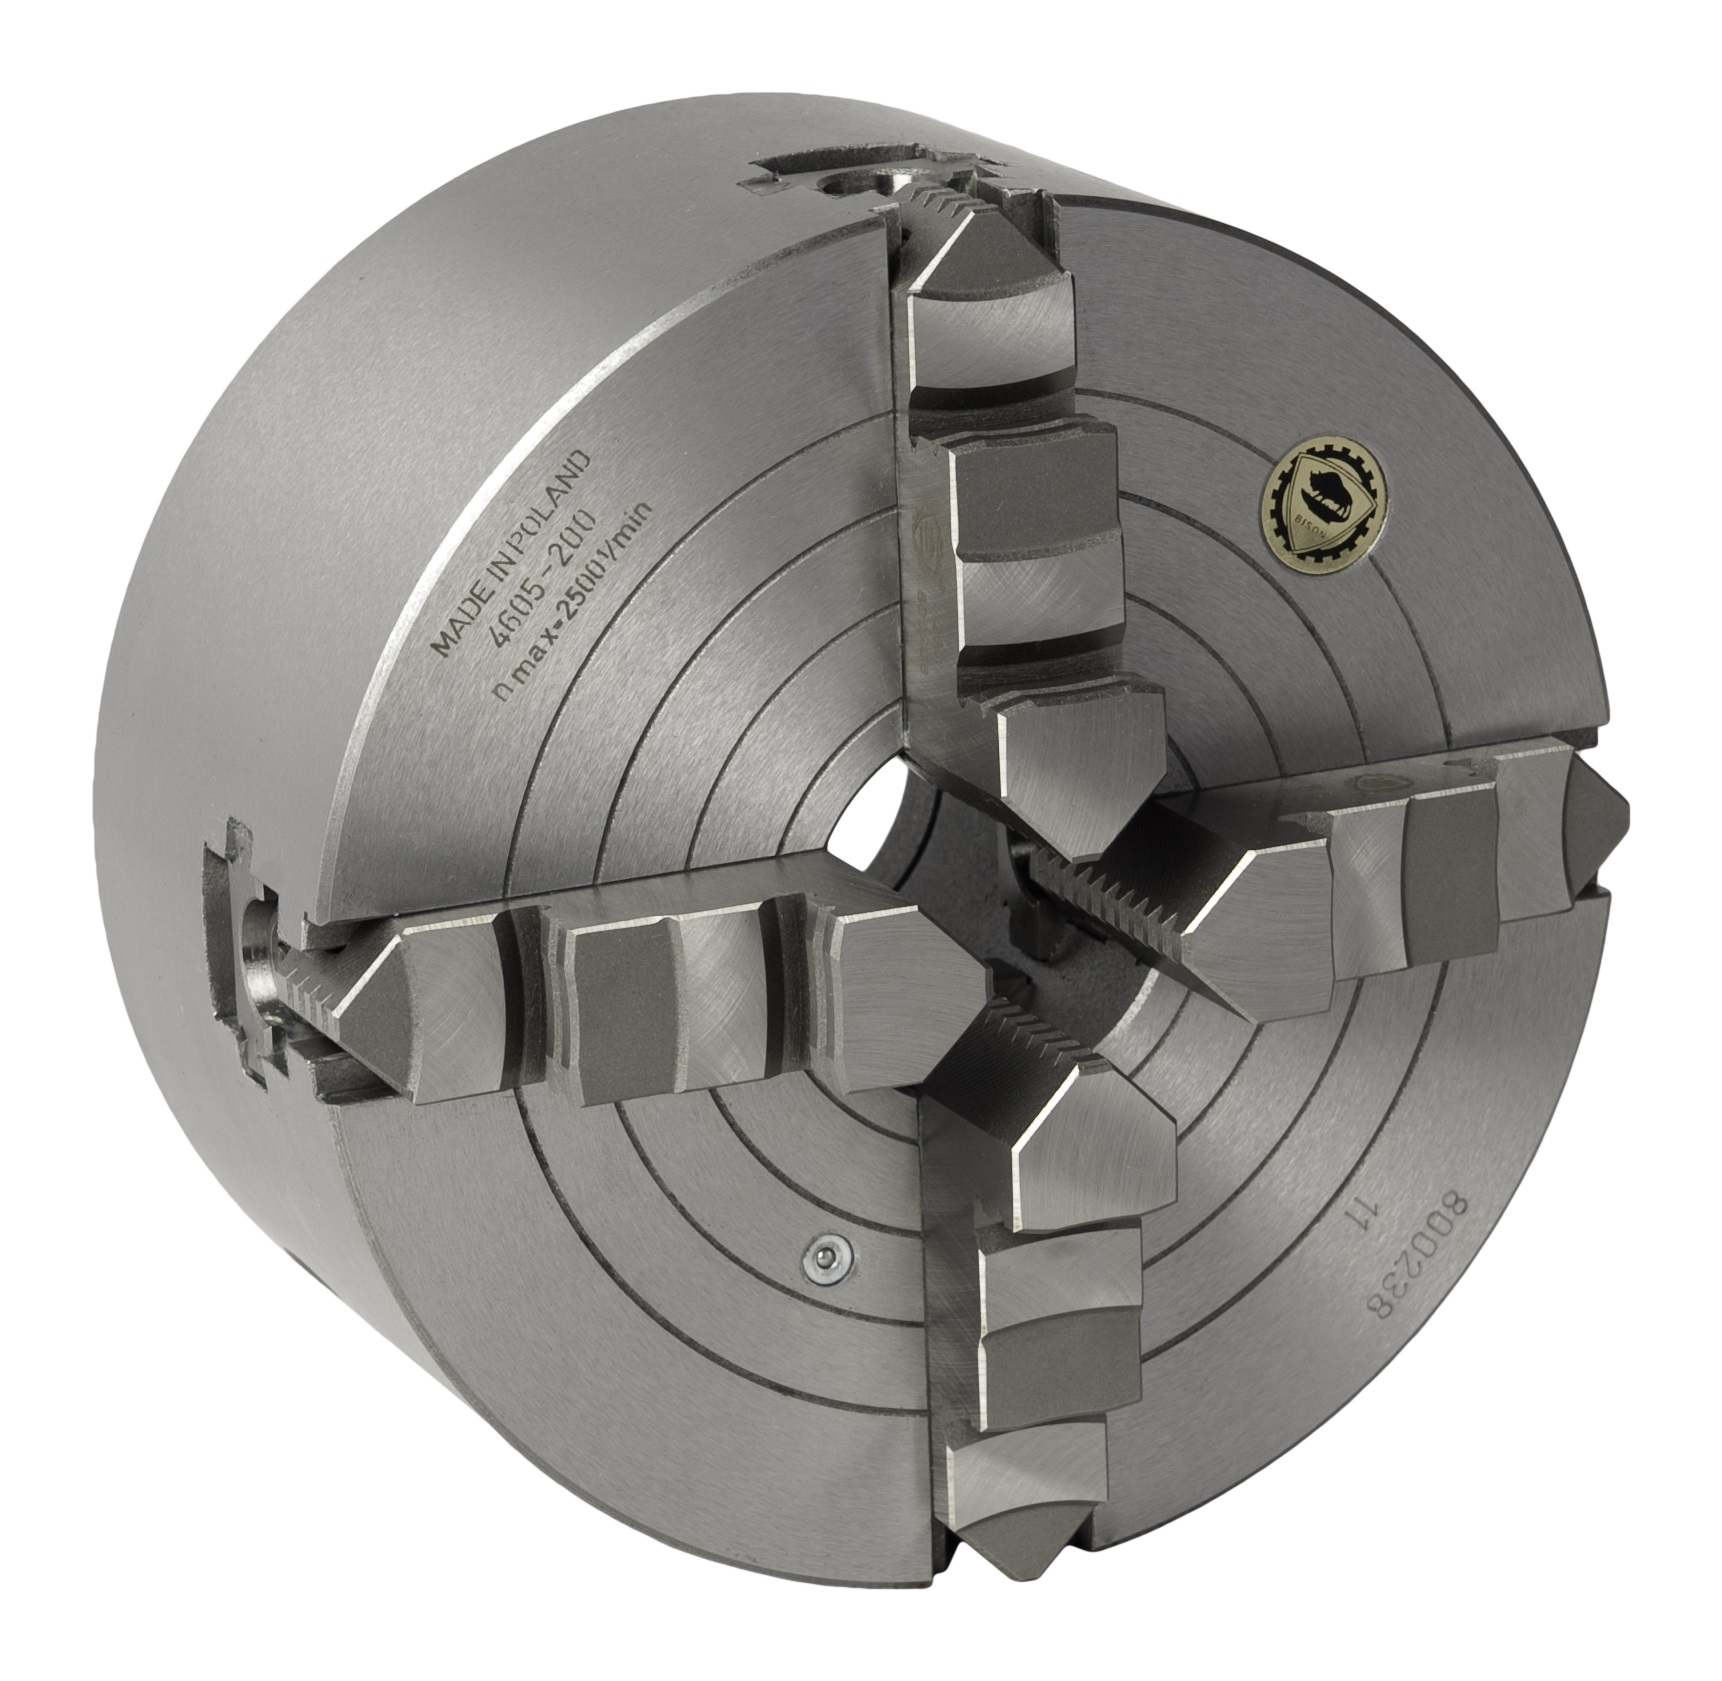 Bison 4605 4-Jaw Cast Iron Combined Self-Centring & Independent (Wescott) Scroll Chuck with Plain Back Mounting - DIN 6351.